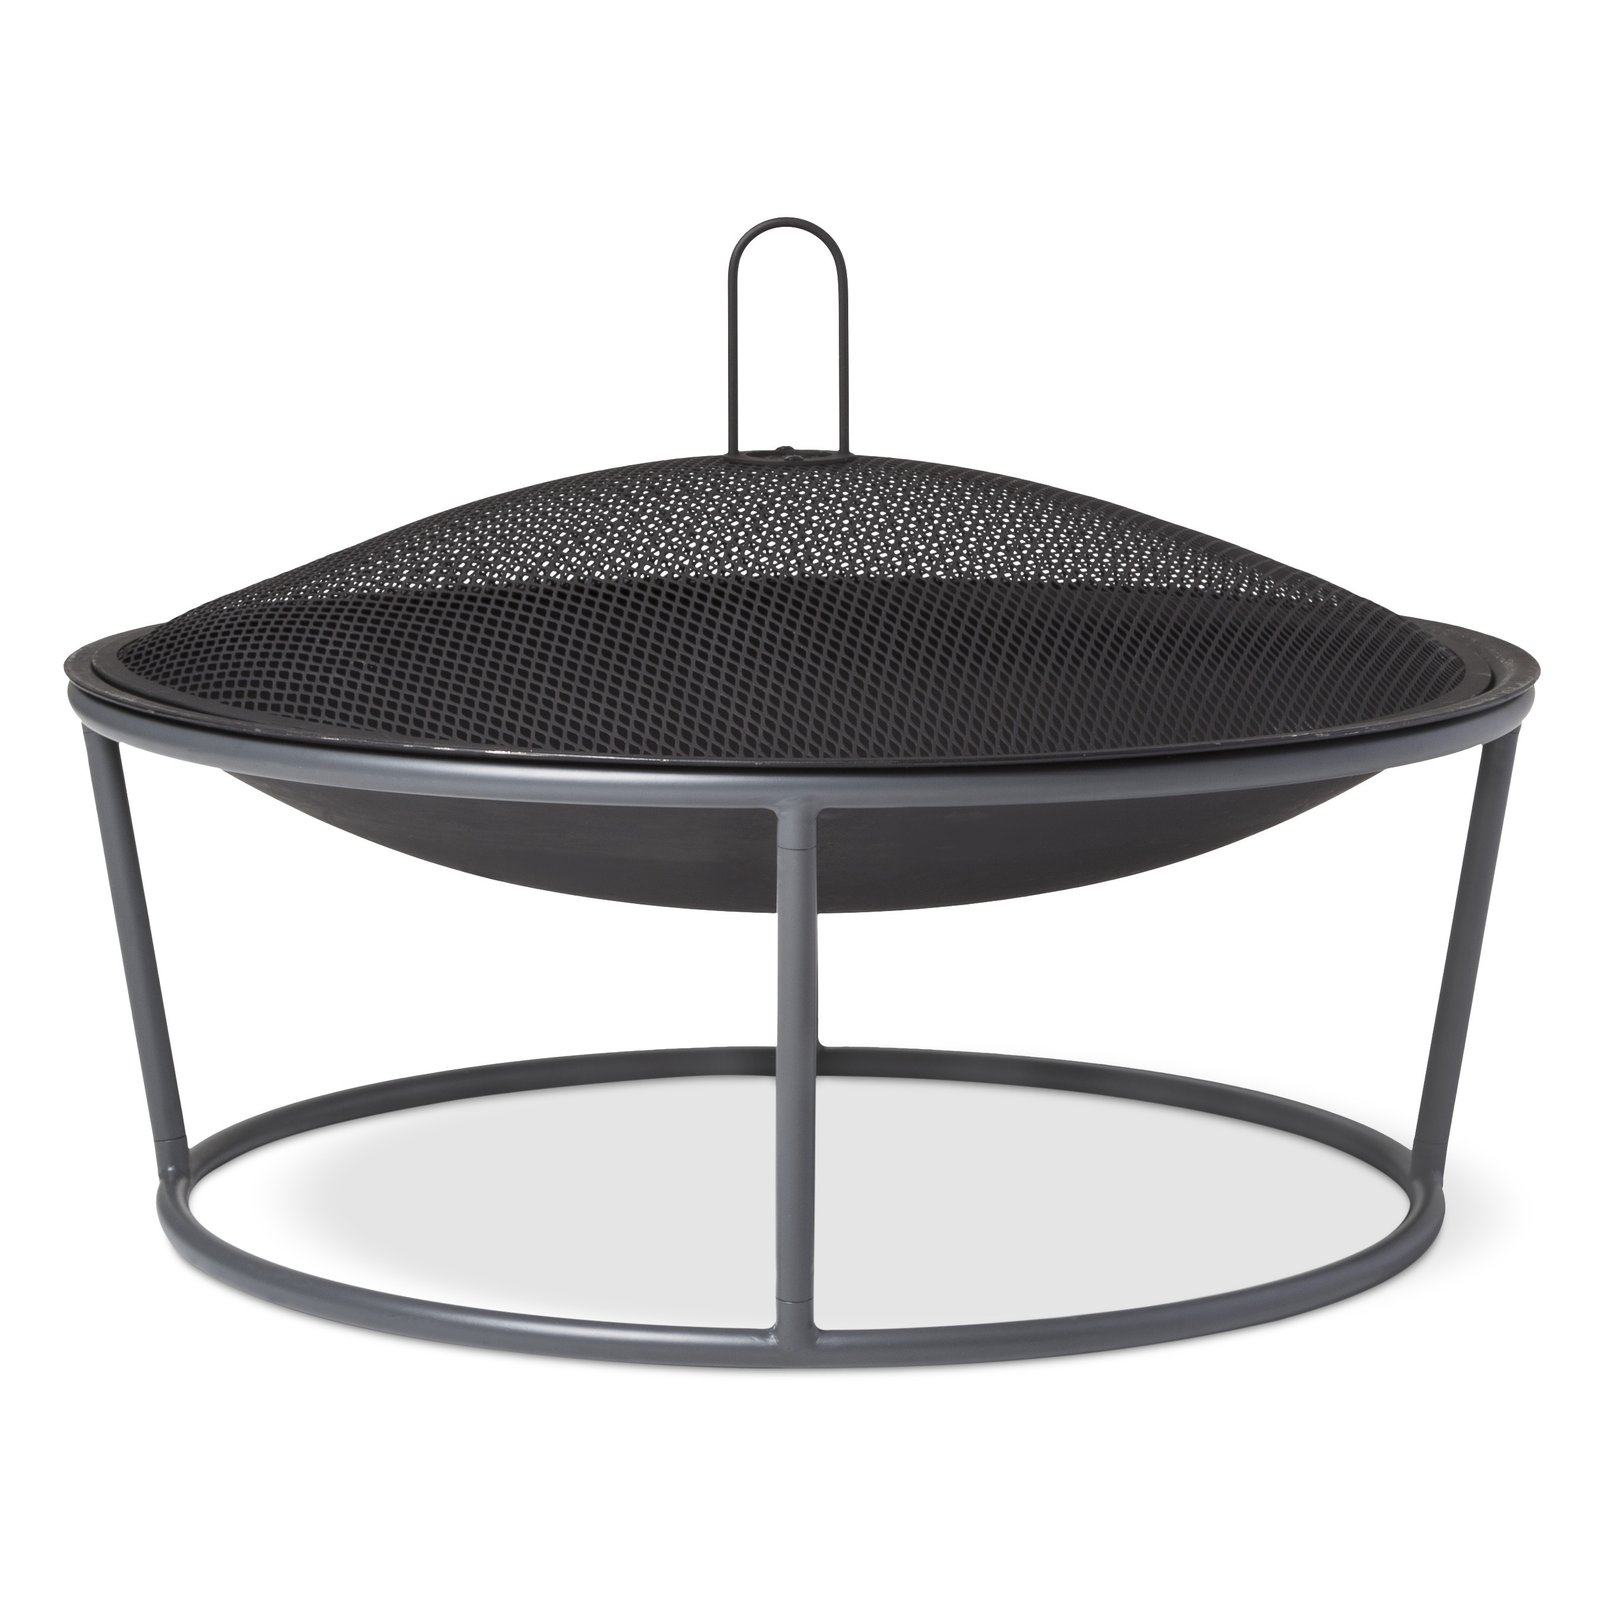 Firebowl, $89.99; designed by Chris Deam and Nick Dine for Modern by Dwell Magazine for Target  Modern by Dwell Magazine: Outdoor Collection - Photo 3 of 17